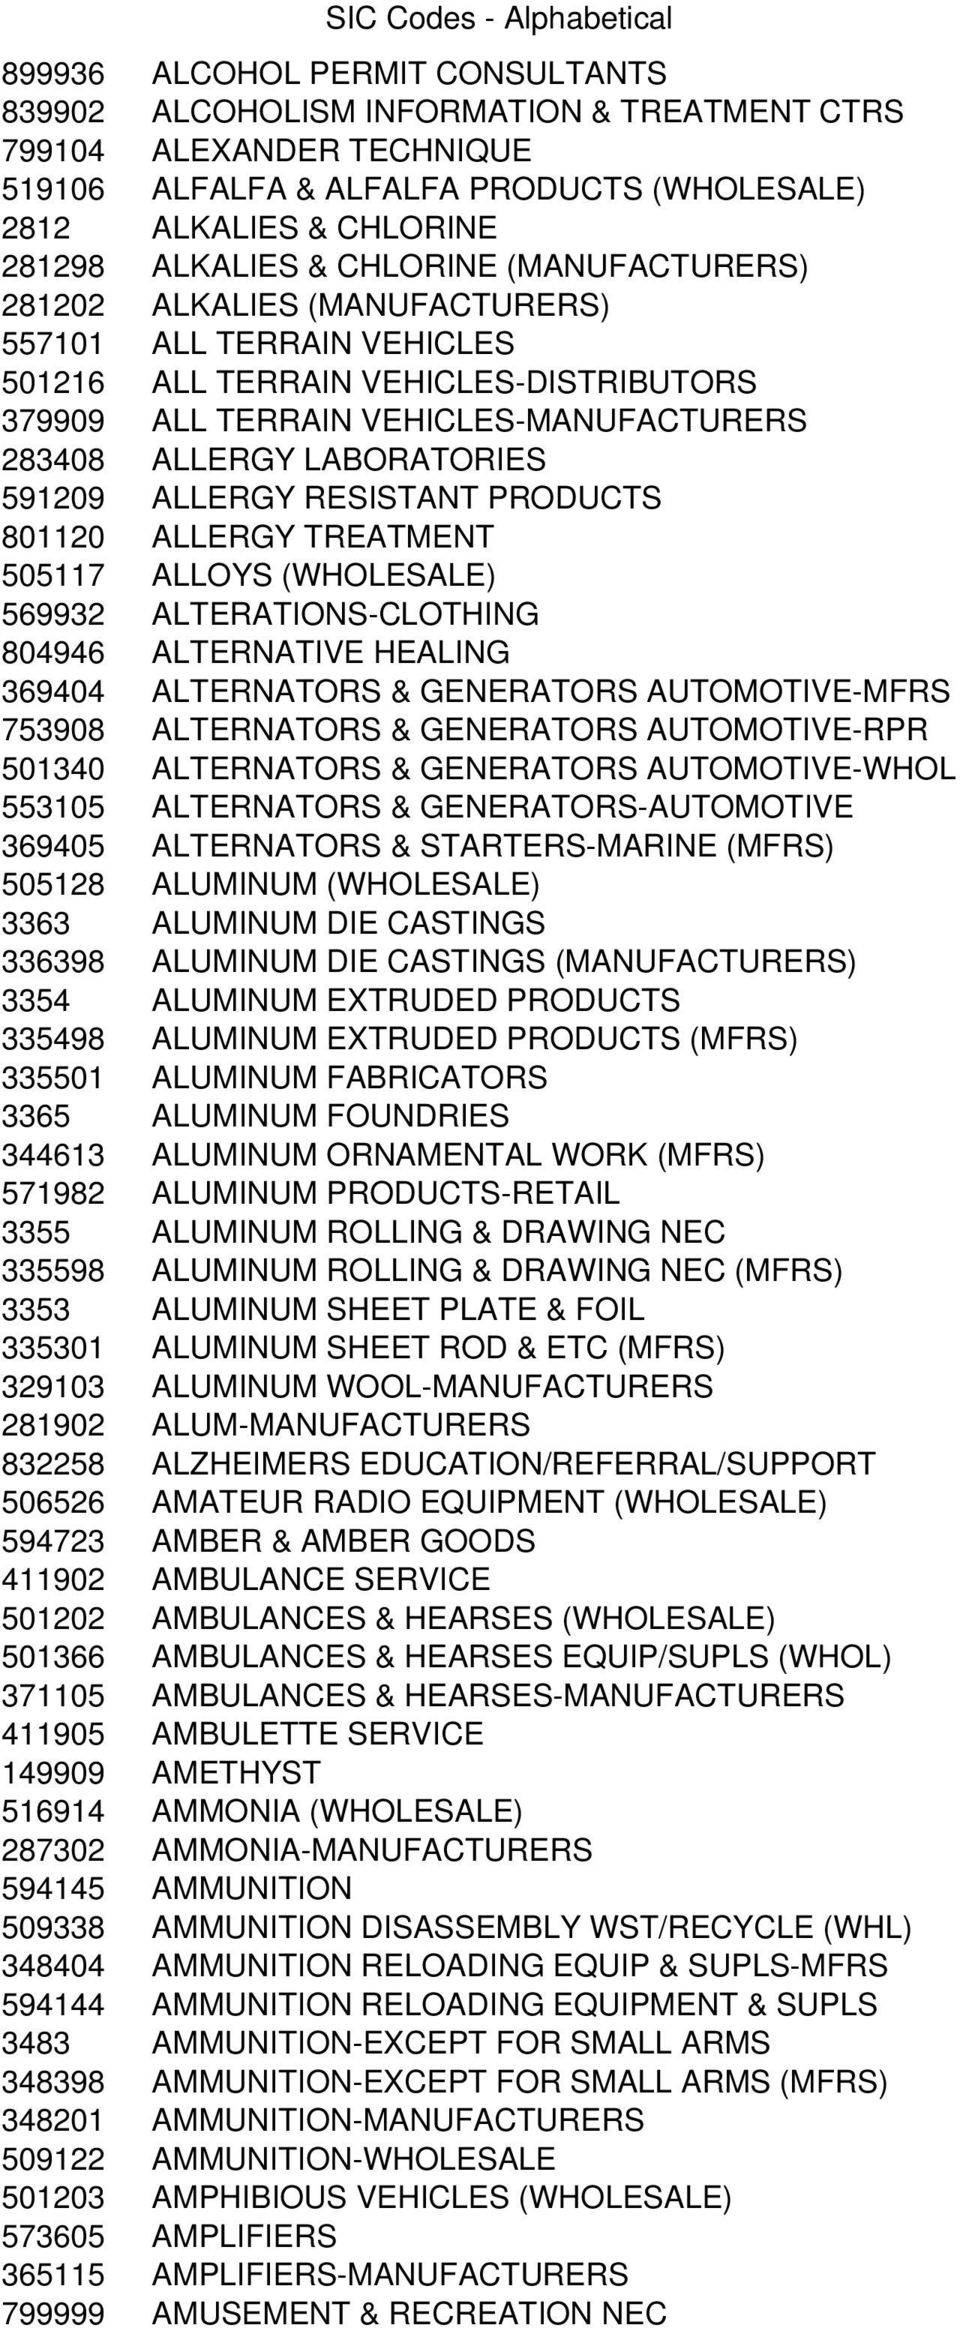 591209 ALLERGY RESISTANT PRODUCTS 801120 ALLERGY TREATMENT 505117 ALLOYS (WHOLESALE) 569932 ALTERATIONS-CLOTHING 804946 ALTERNATIVE HEALING 369404 ALTERNATORS & GENERATORS AUTOMOTIVE-MFRS 753908